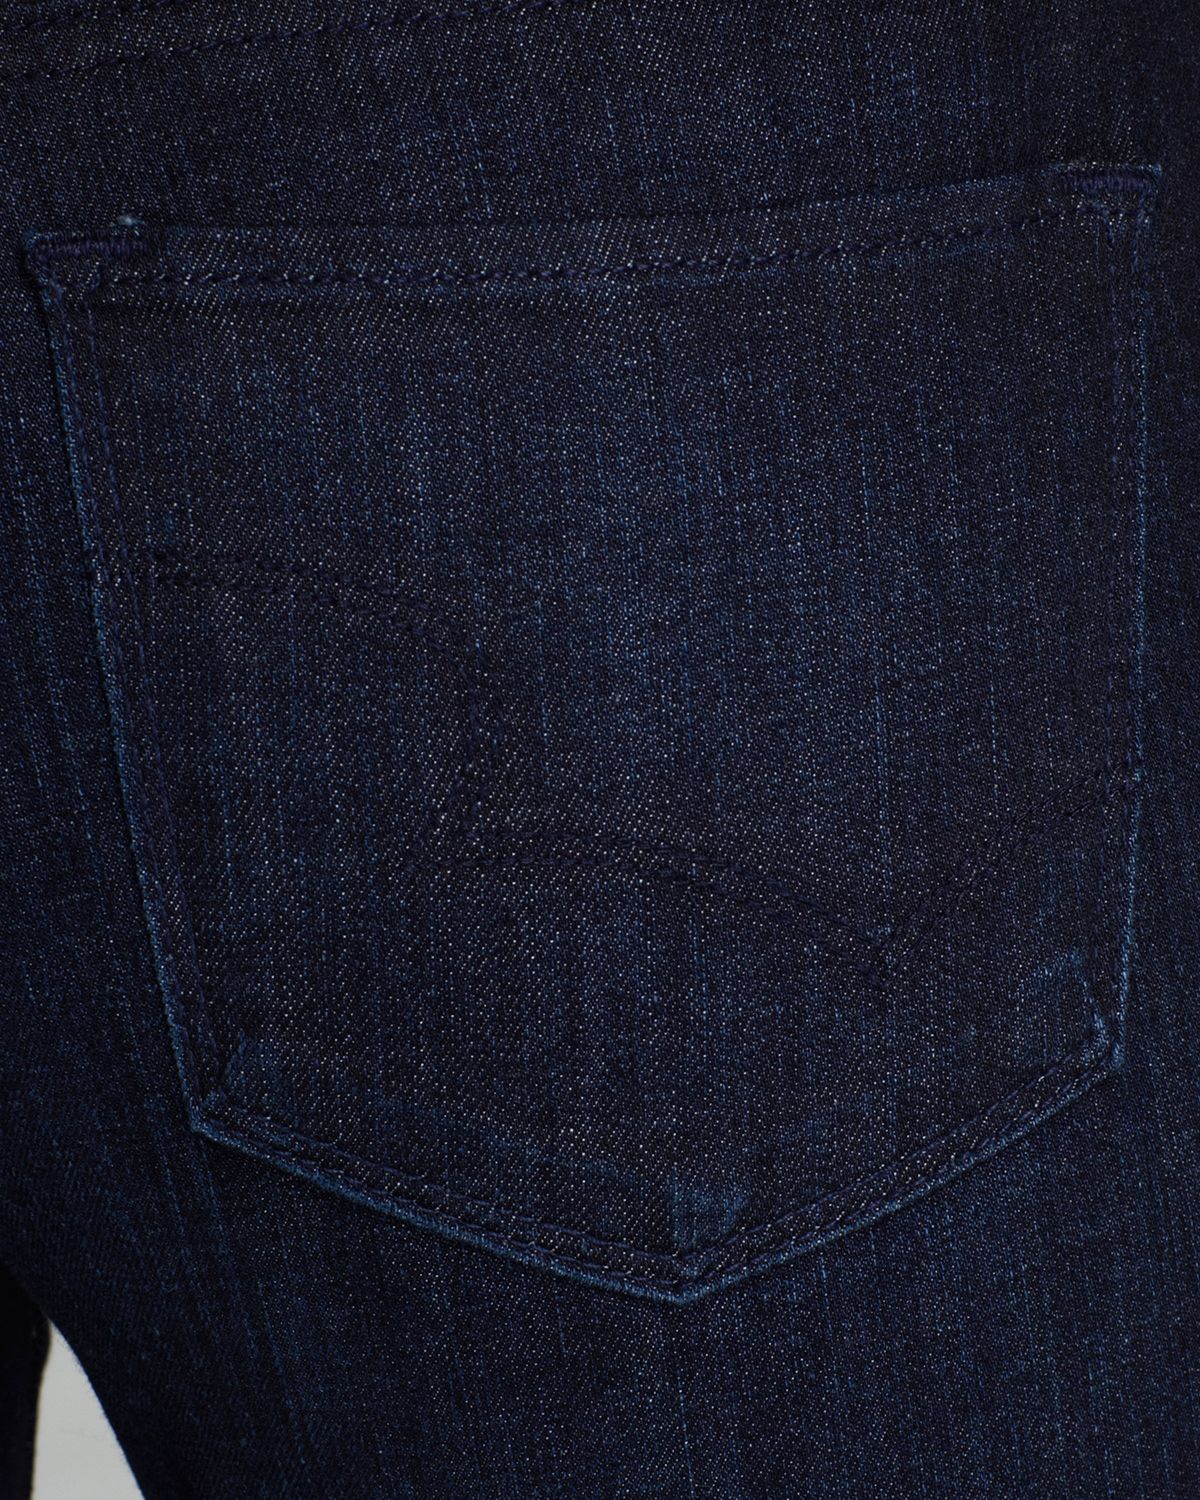 Big Star Jeans Sarah Petite Bootcut in Holly Midnight in Blue